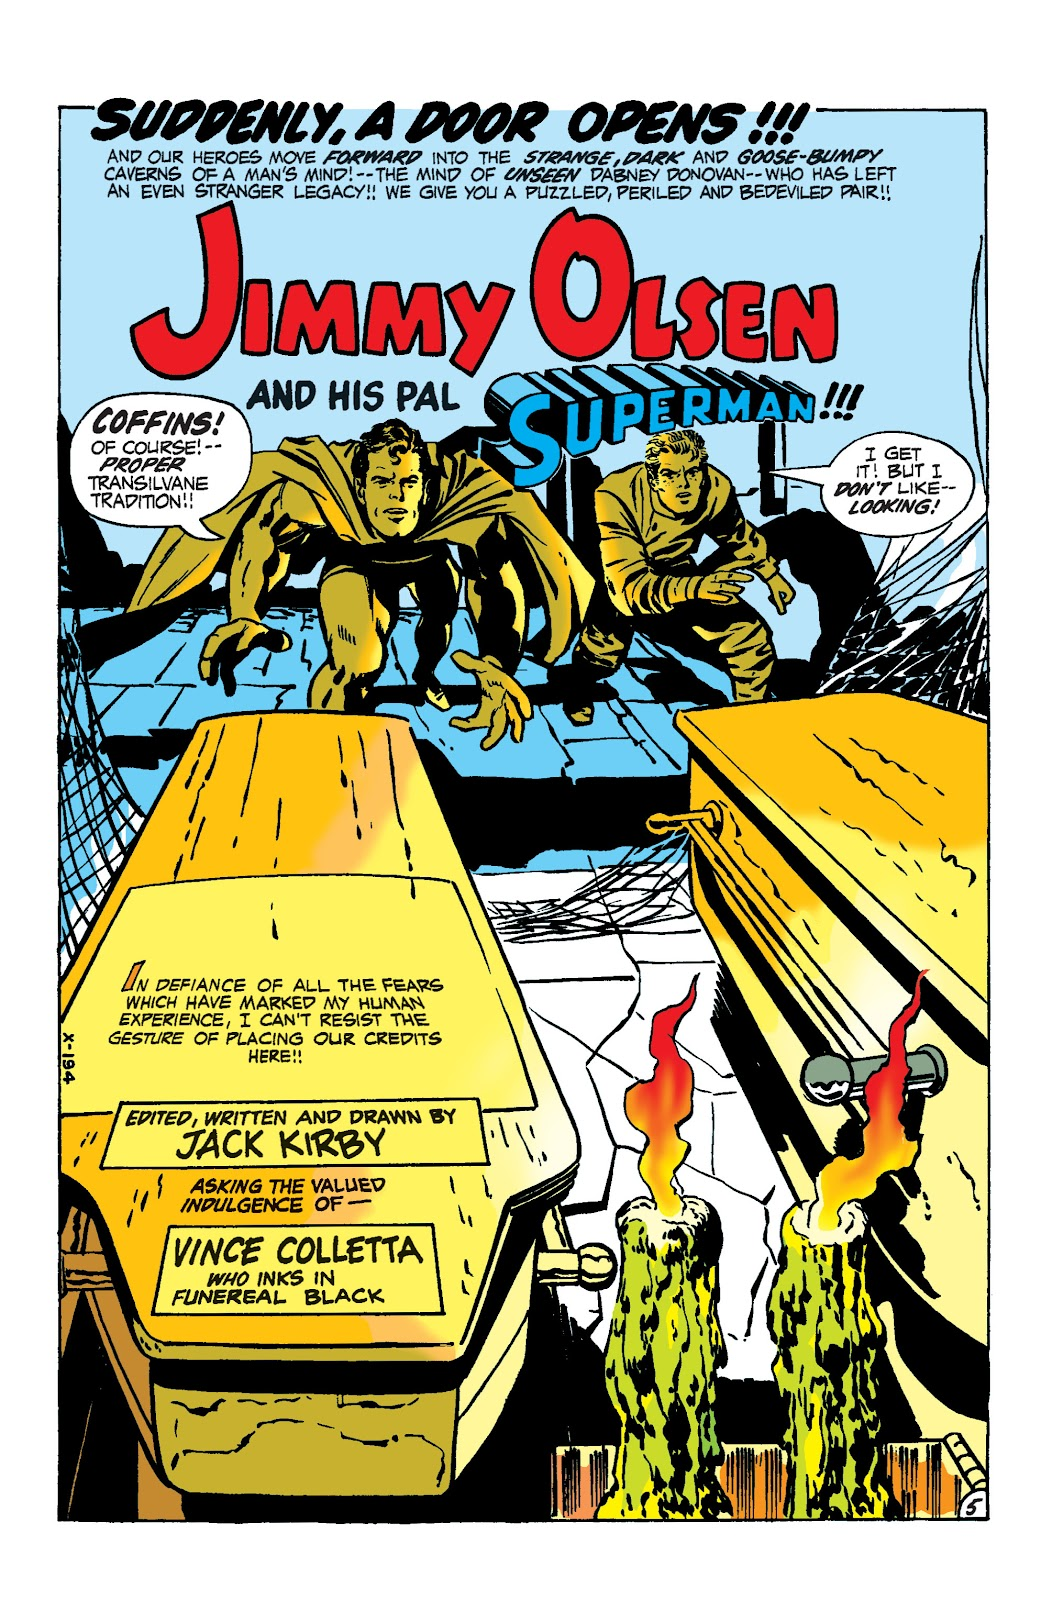 Read online Superman's Pal, Jimmy Olsen by Jack Kirby comic -  Issue # TPB (Part 3) - 19